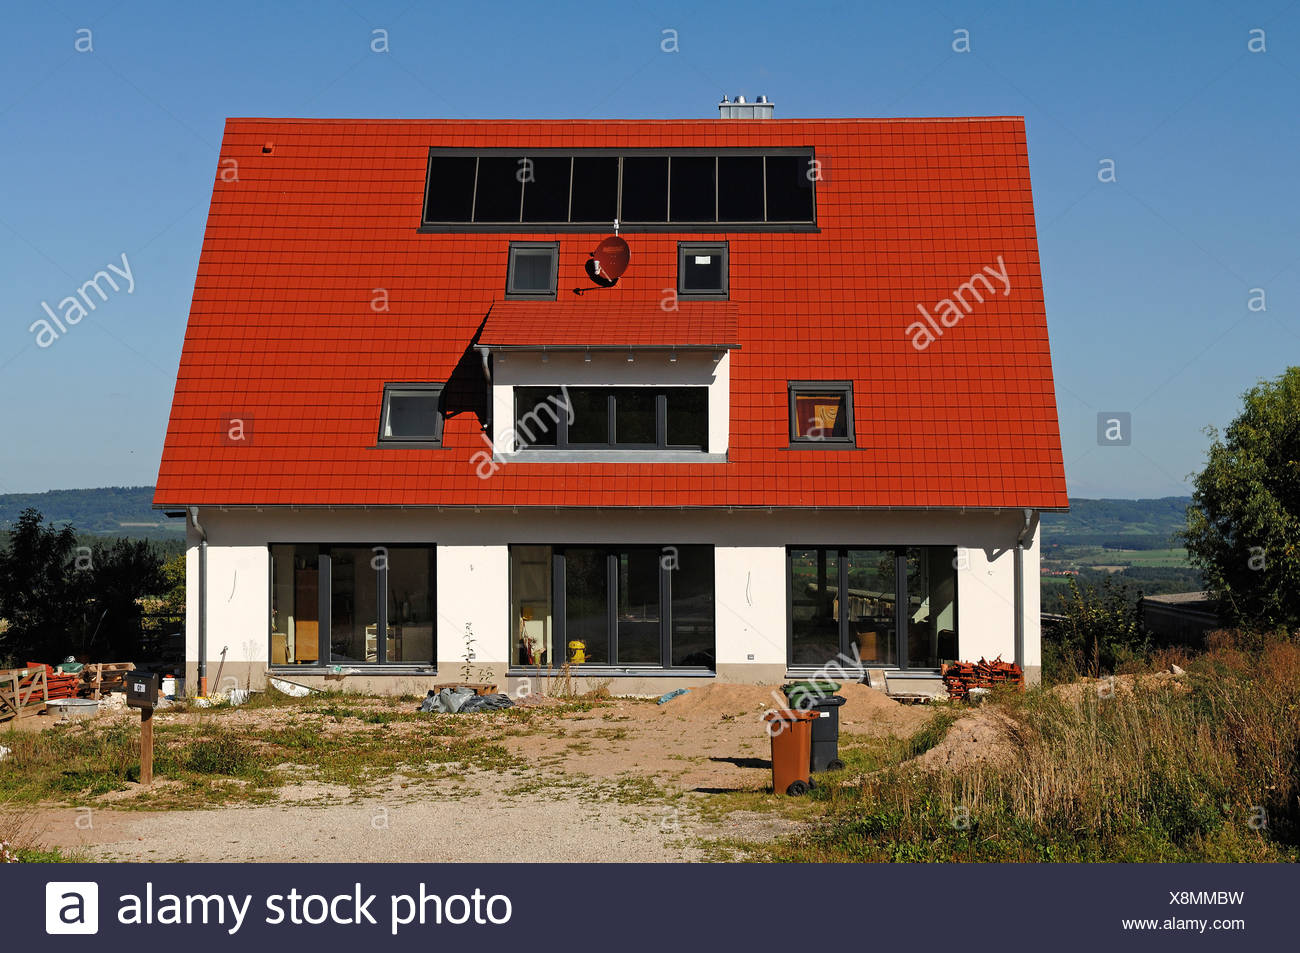 Recently completed house with solar panels on the roof, garden area is not yet complete, Tauchersreuth, Middle Franconia - Stock Image